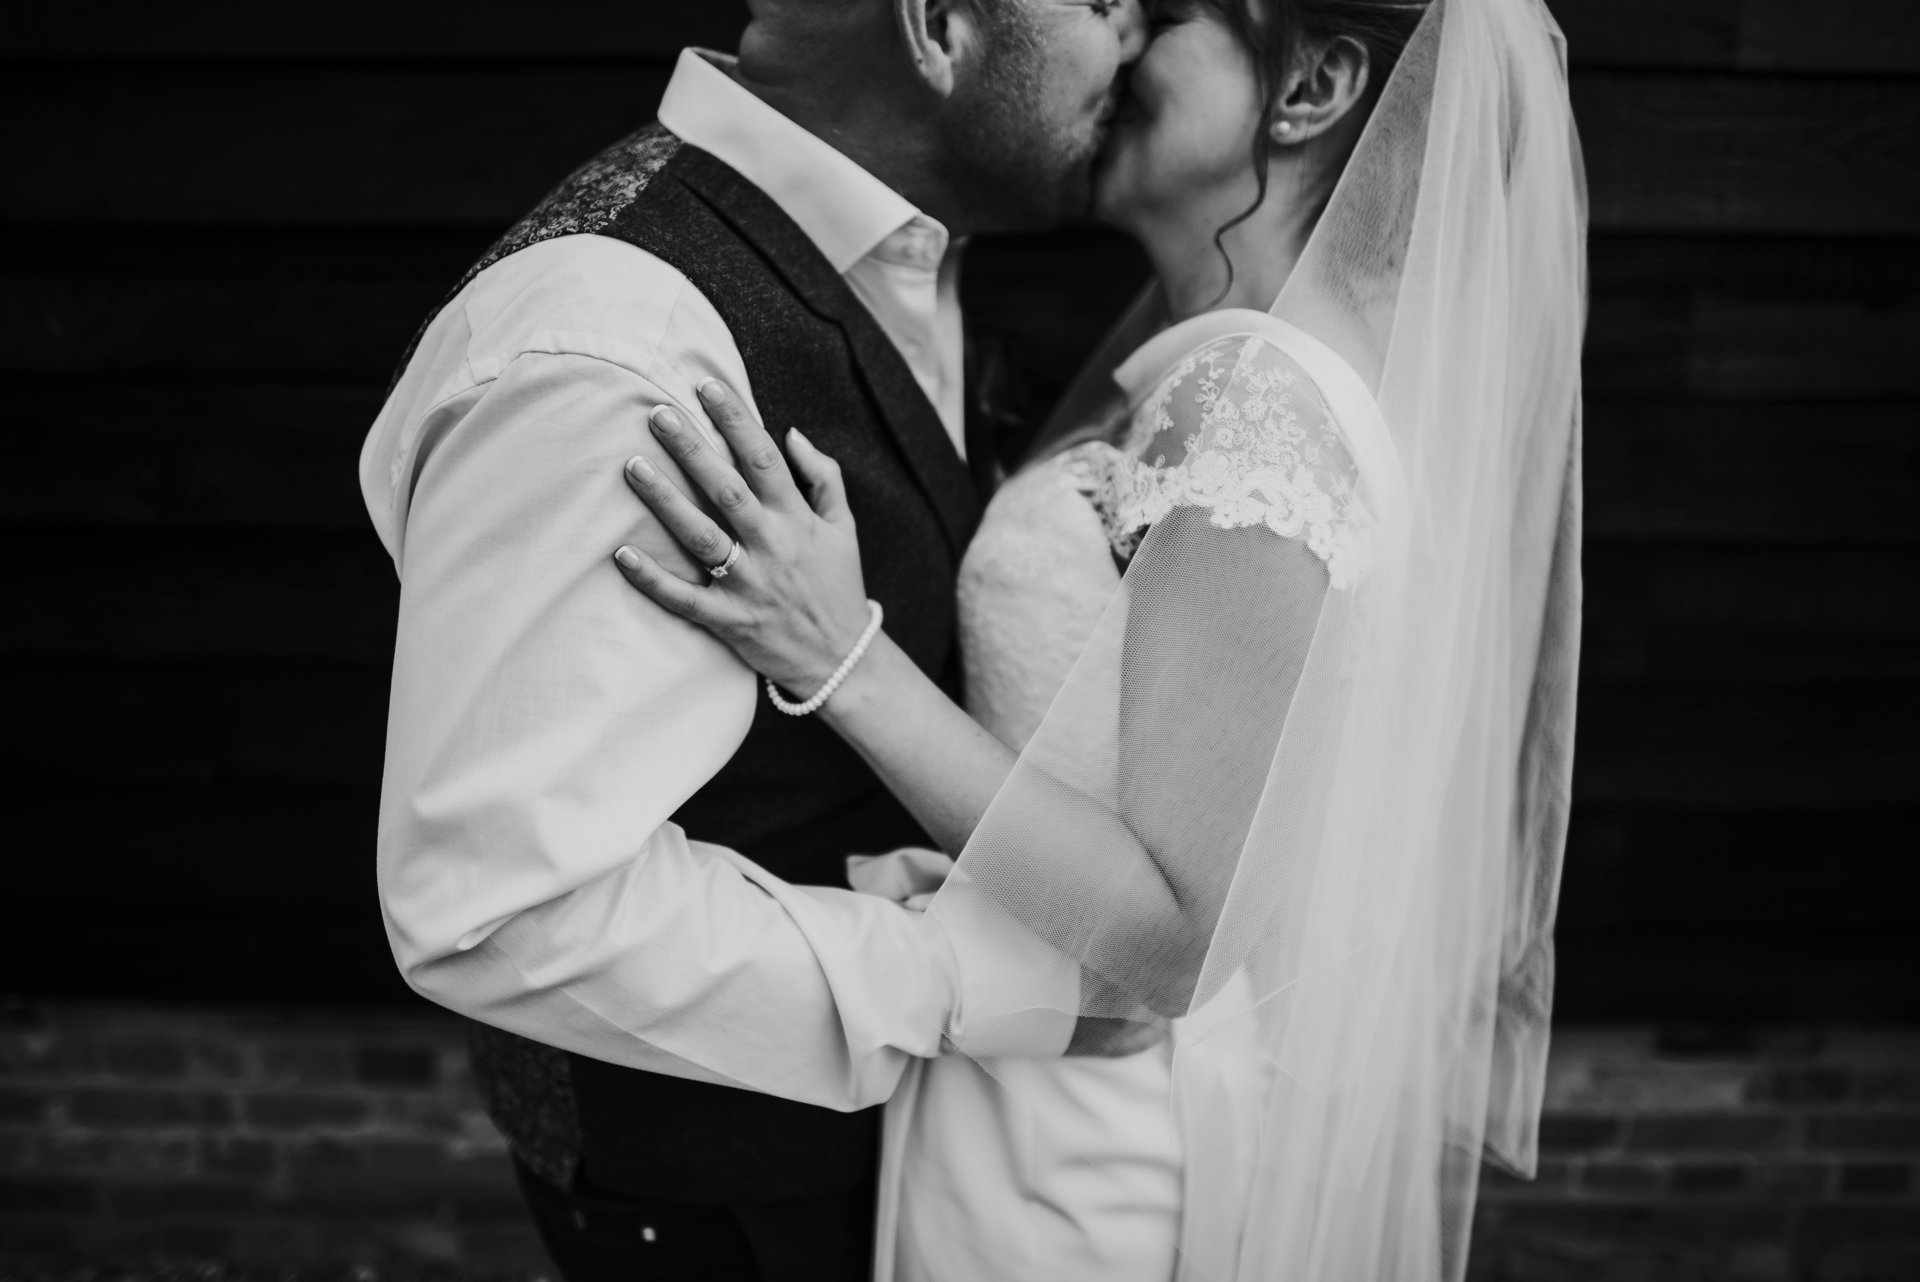 Bride and groom kissing on wedding day at The Olde Bell, Hurley